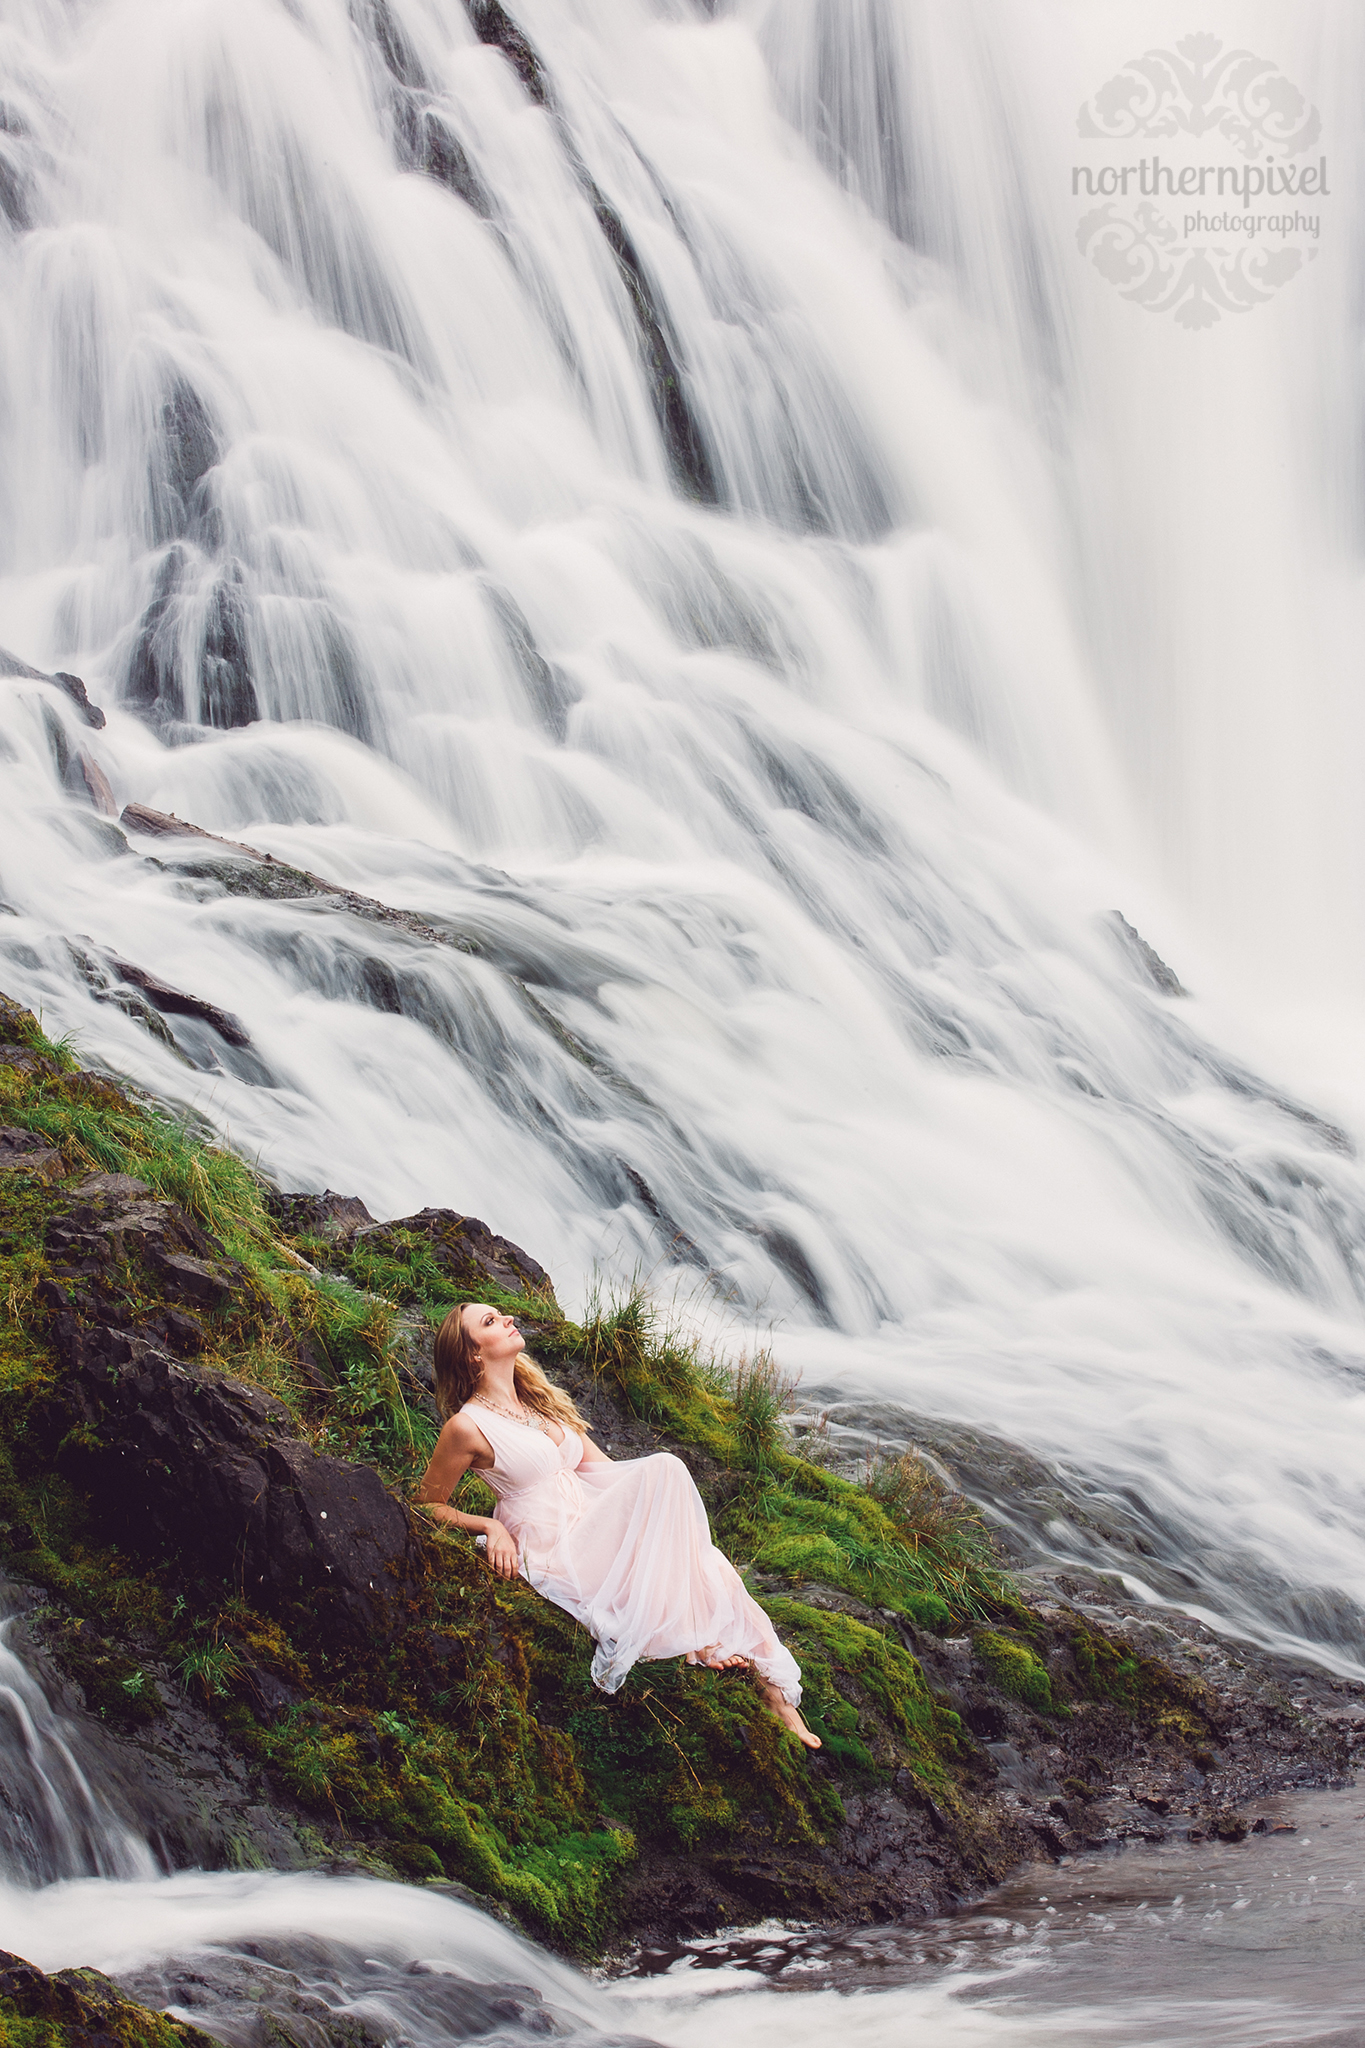 Waterfall Fashion Photography Prince George British Columbia Photographers